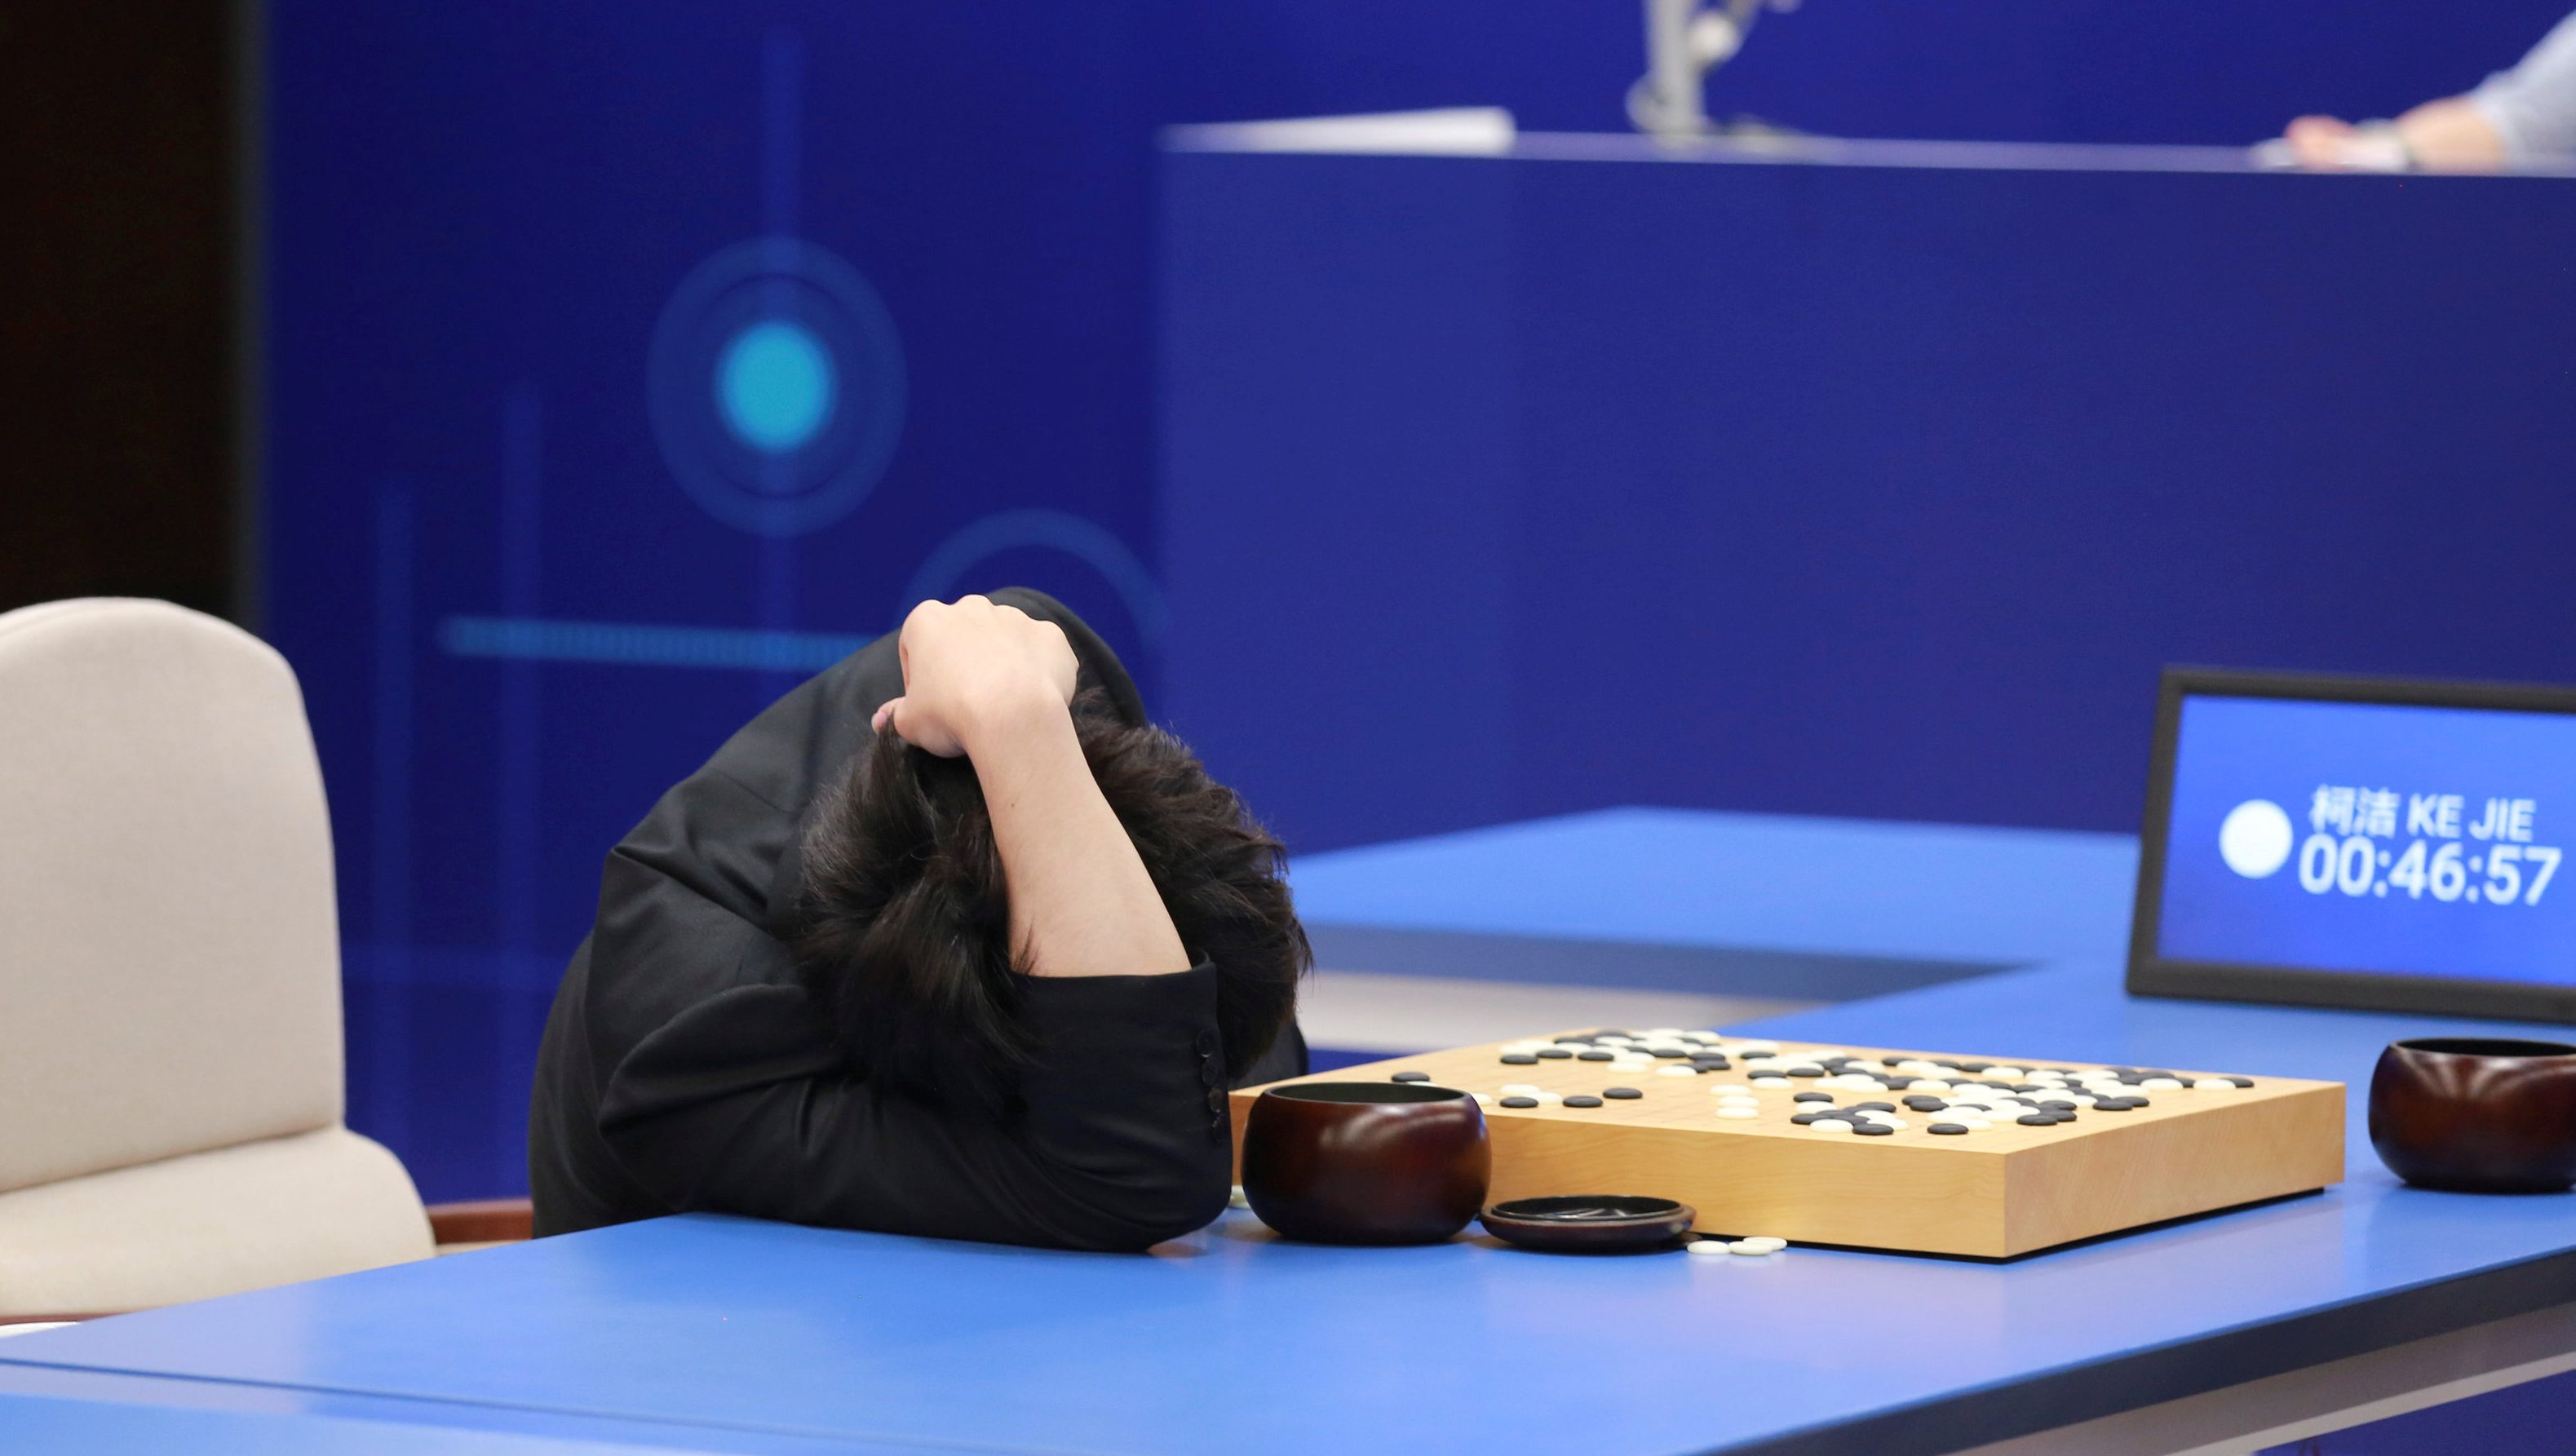 Chinese Go player Ke Jie reacts during his second match against Google's artificial intelligence program AlphaGo at the Future of Go Summit in Wuzhen